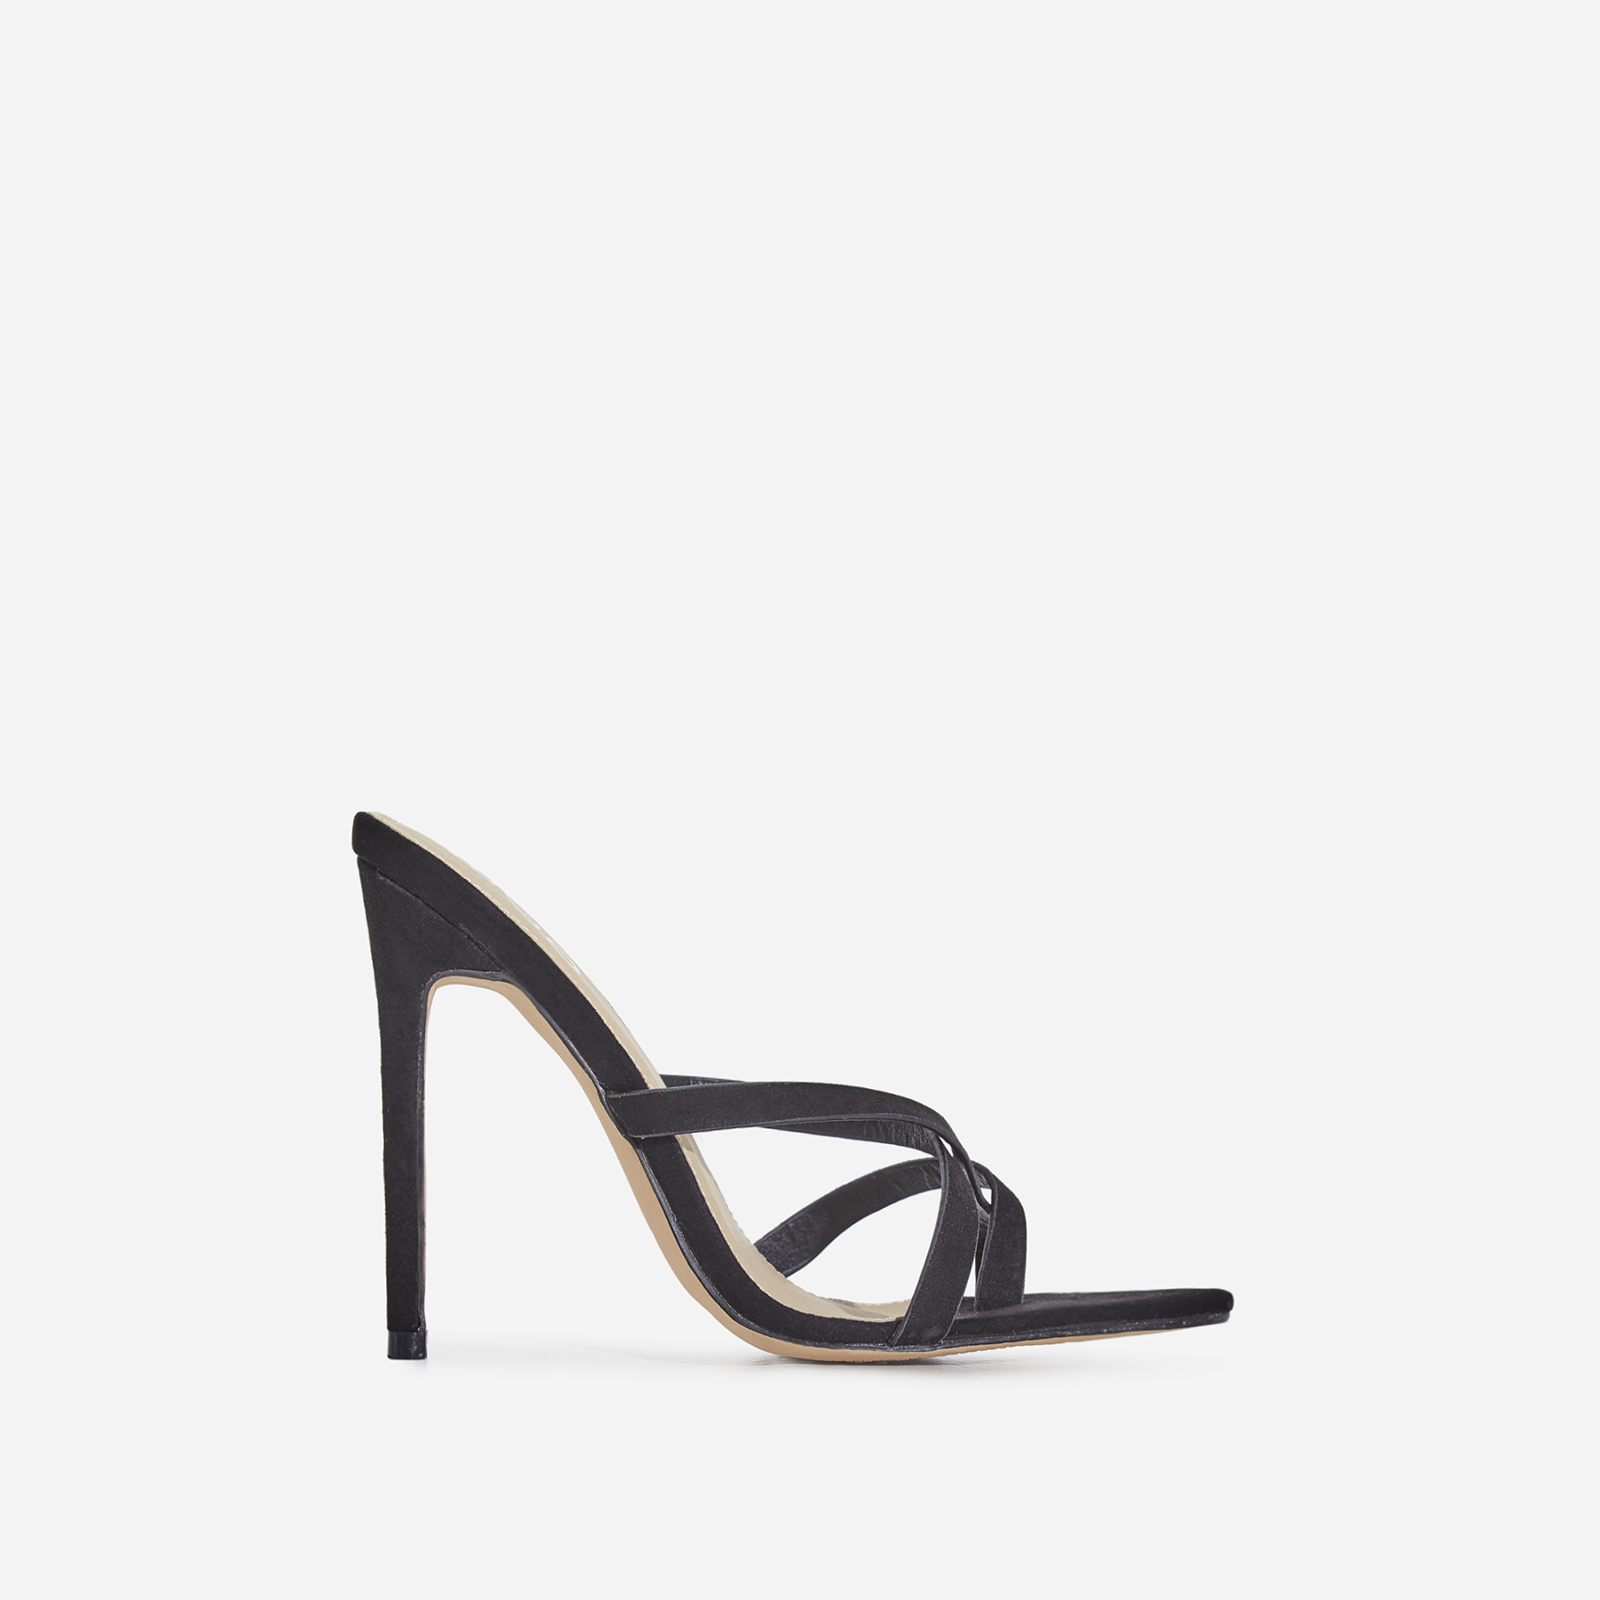 Julie Toe Strap Heel Mule In Black Faux Suede